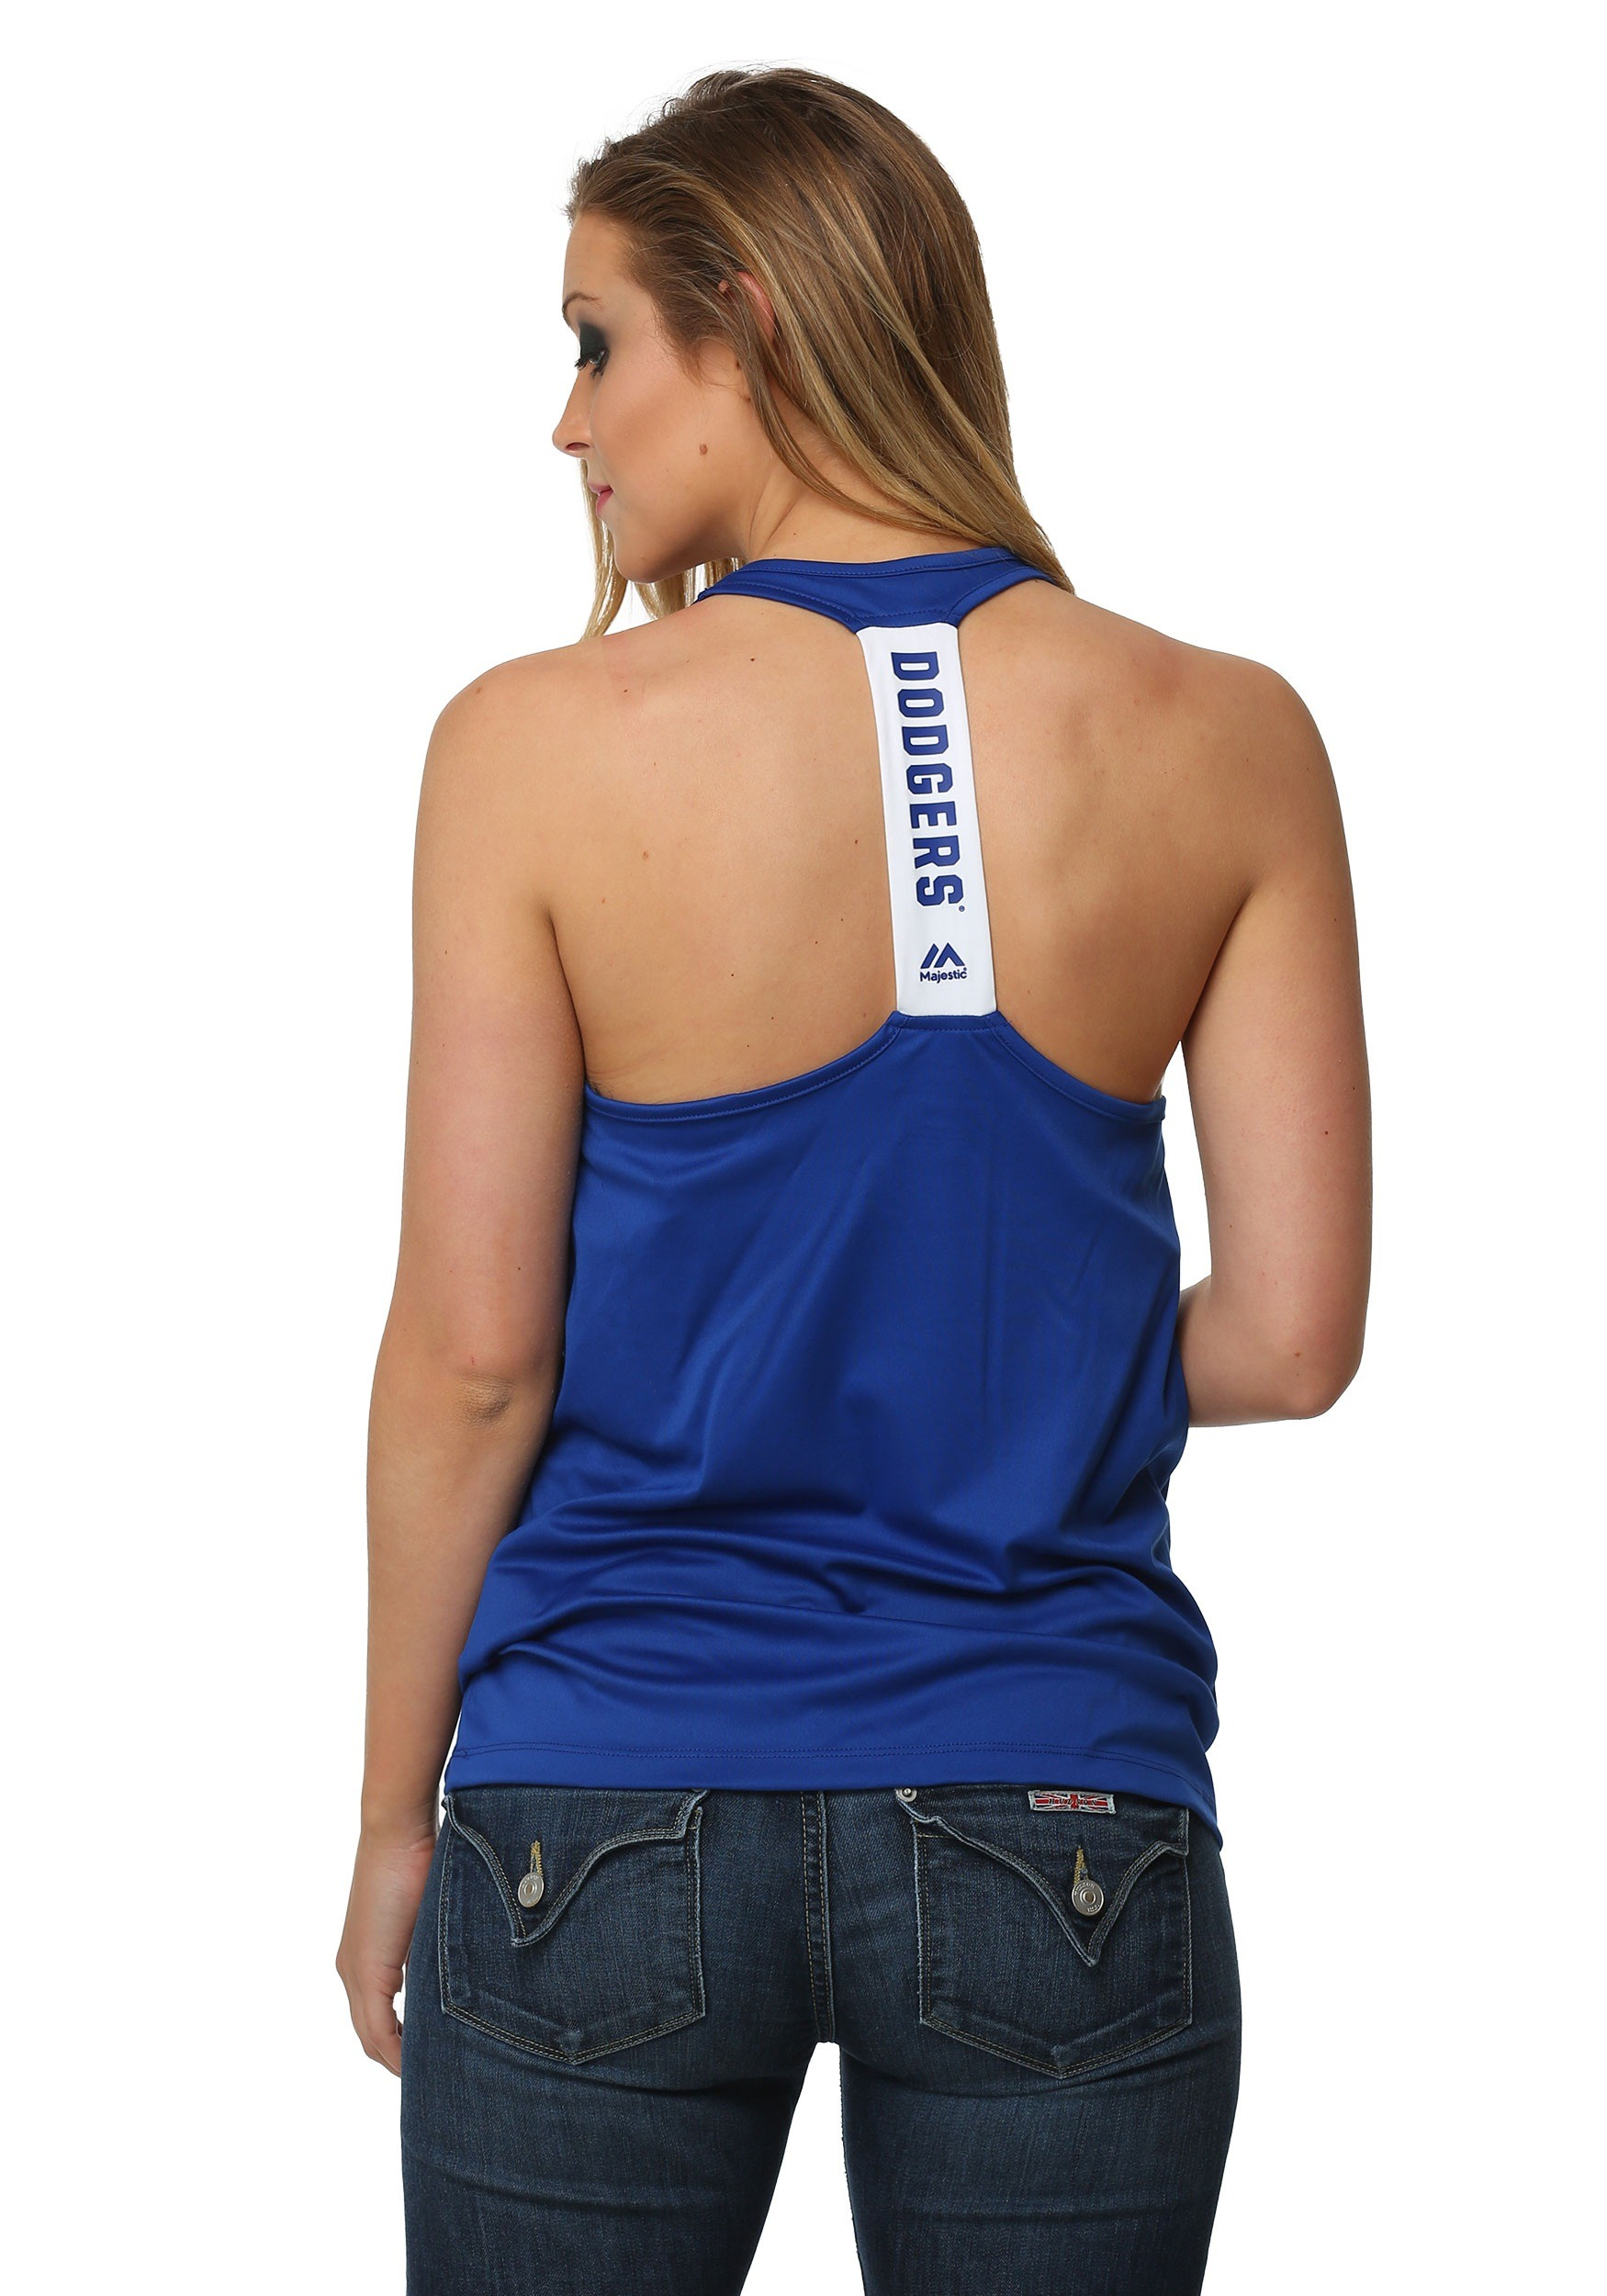 Los Angeles Dodgers Tank Top For Women